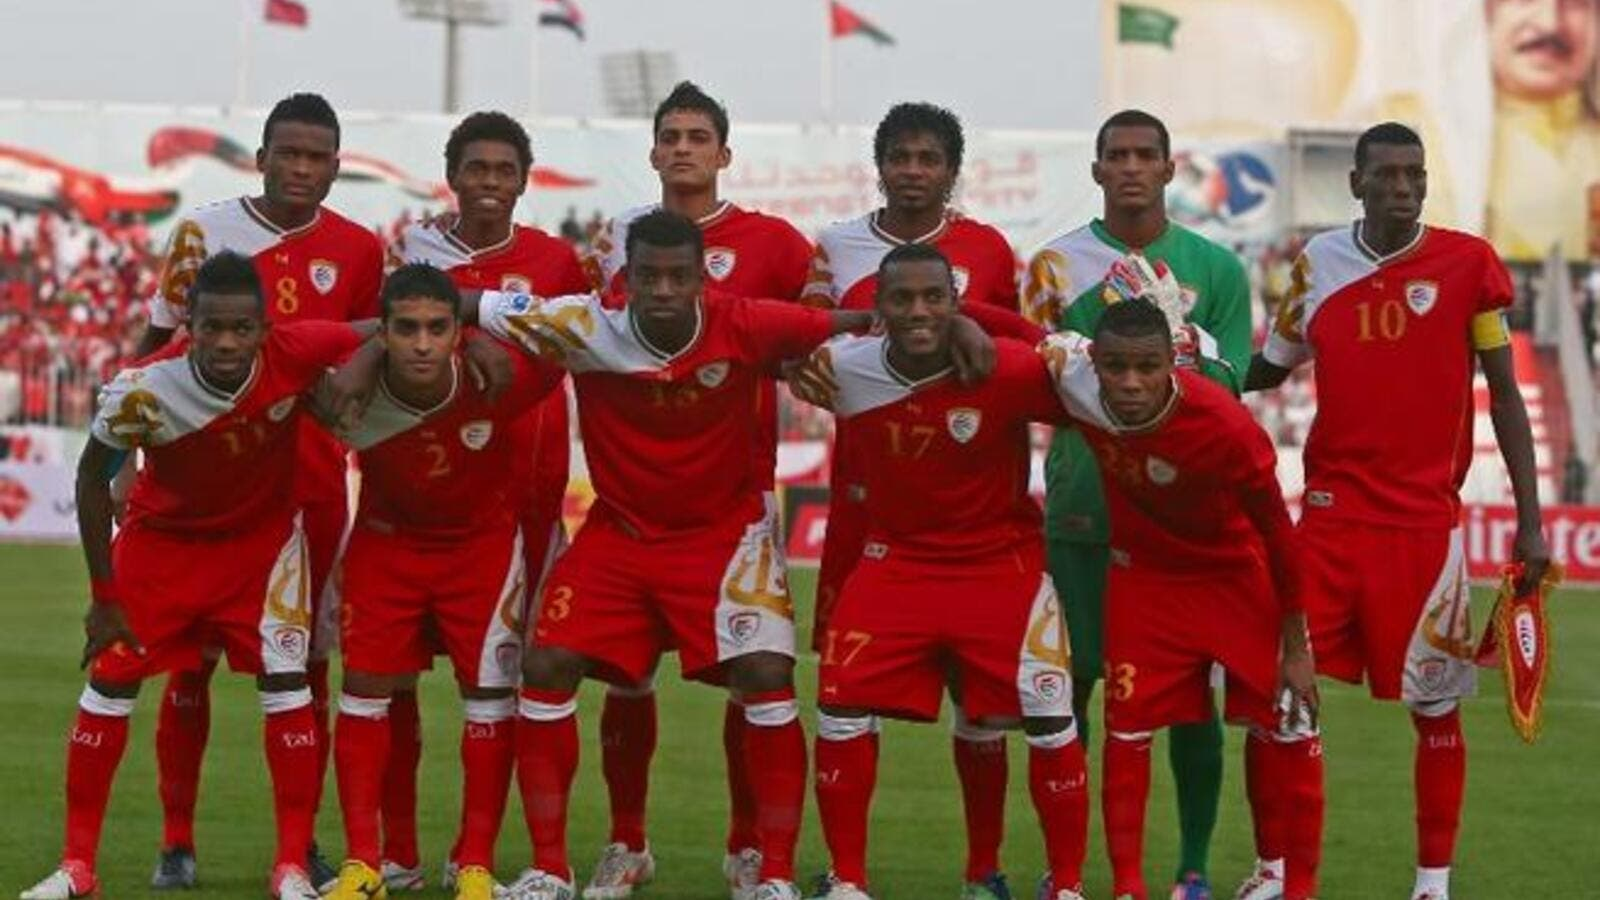 Oman Football Association confirms tie-up with Kappa